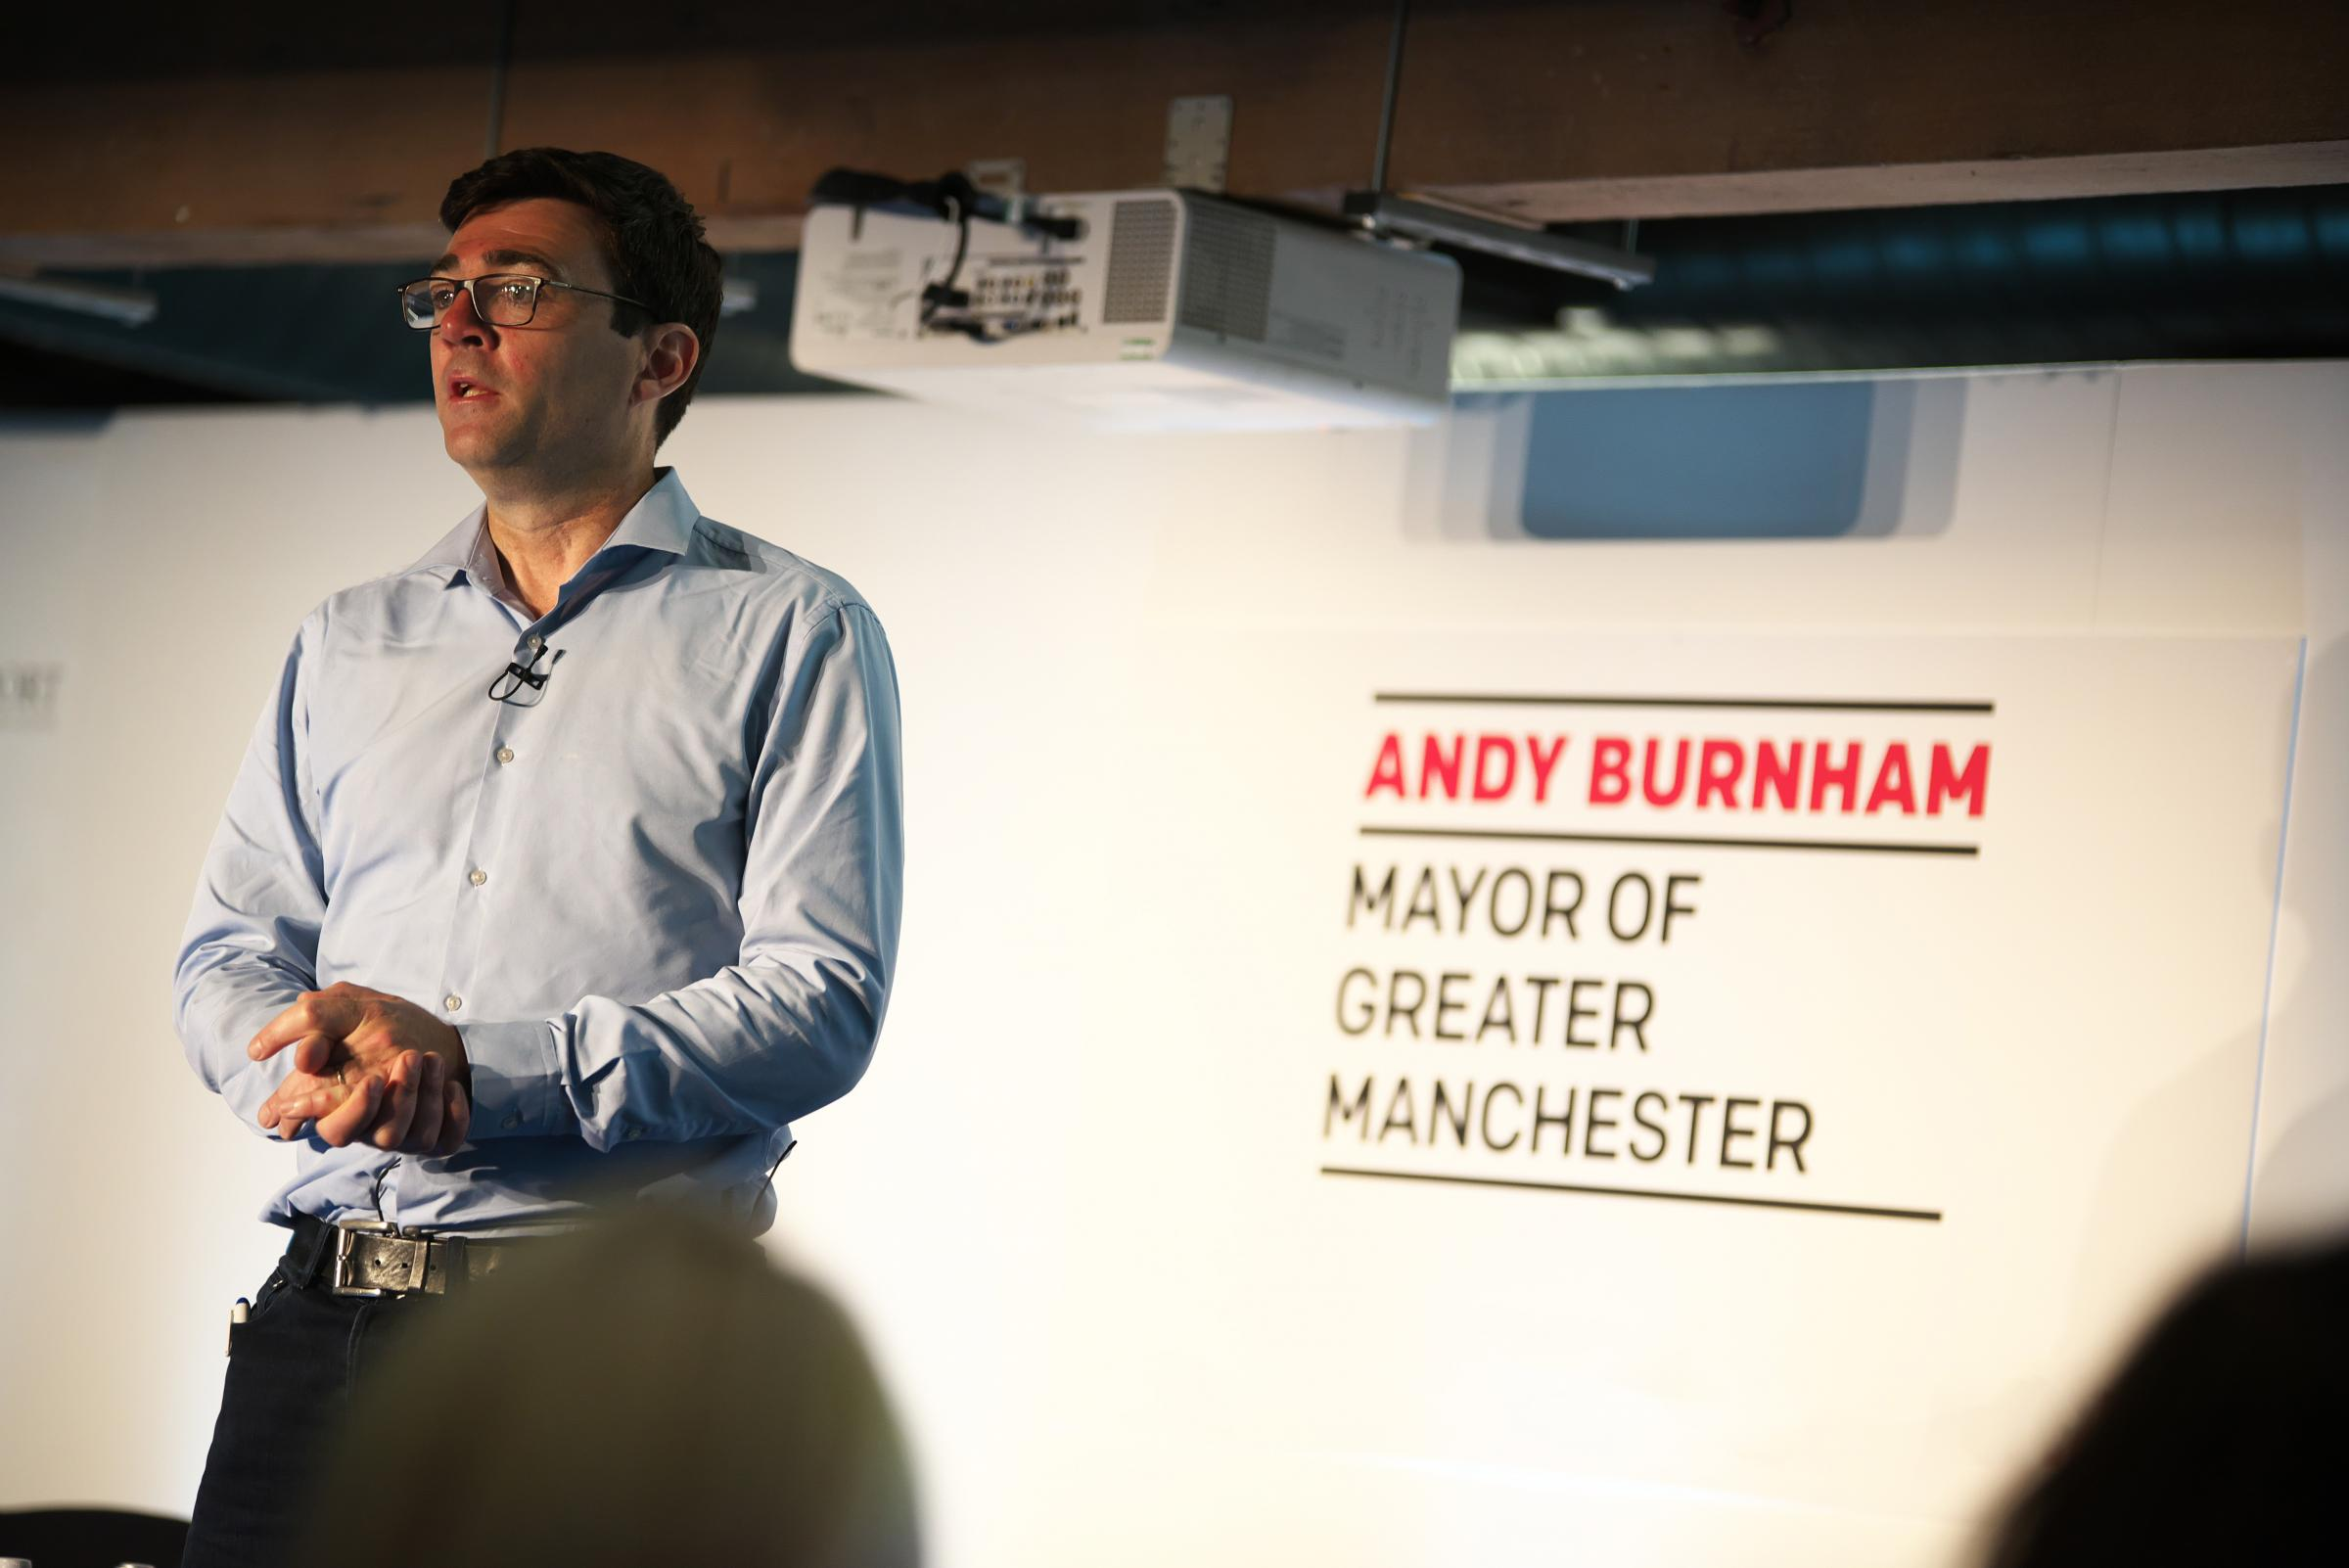 Greater Manchester mayor Andy Burnham